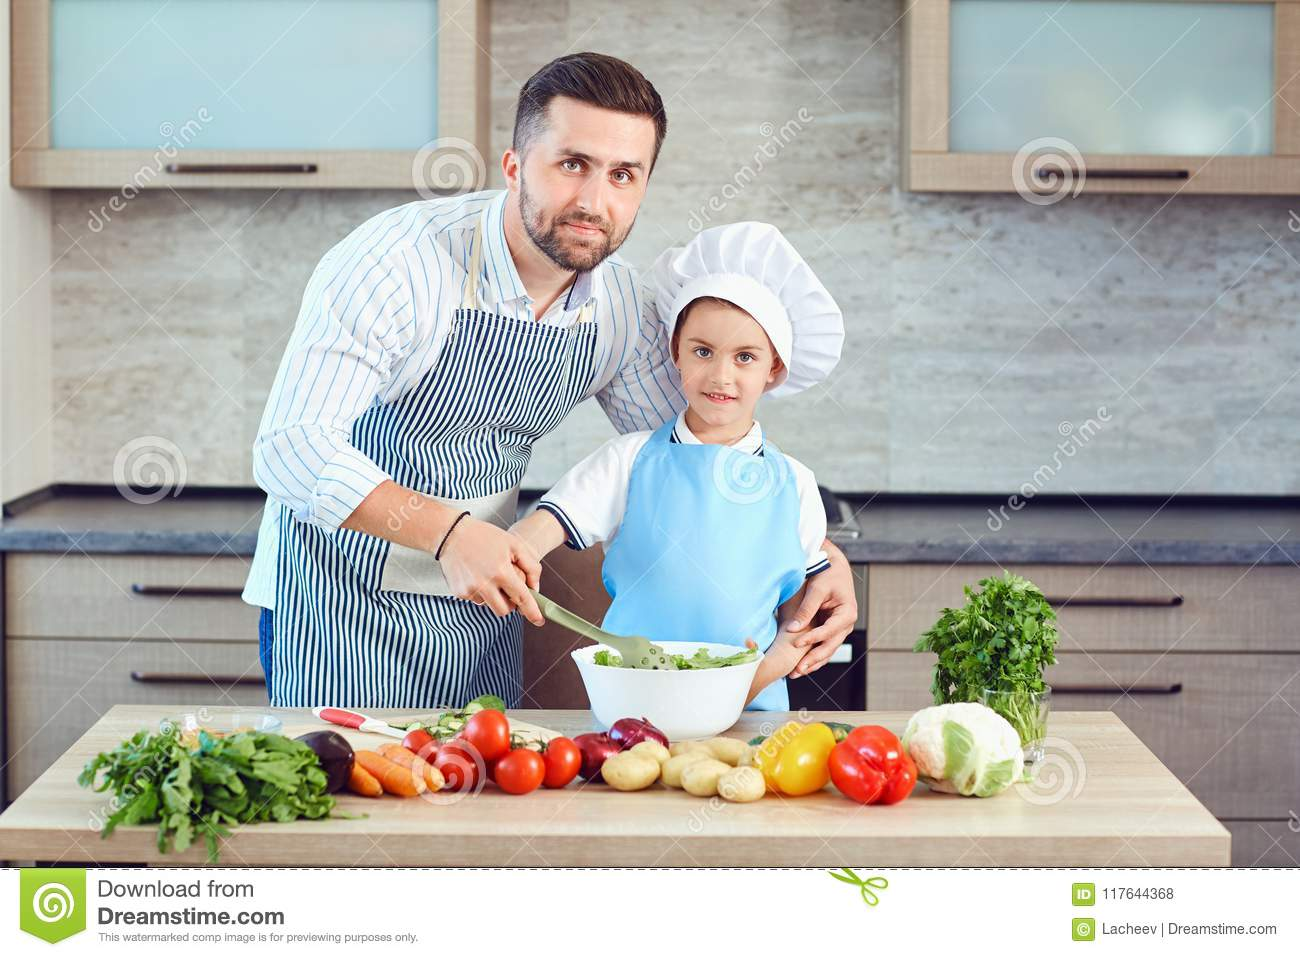 Father And Son Are Cooking In The Kitchen Stock Photo - Image of ...